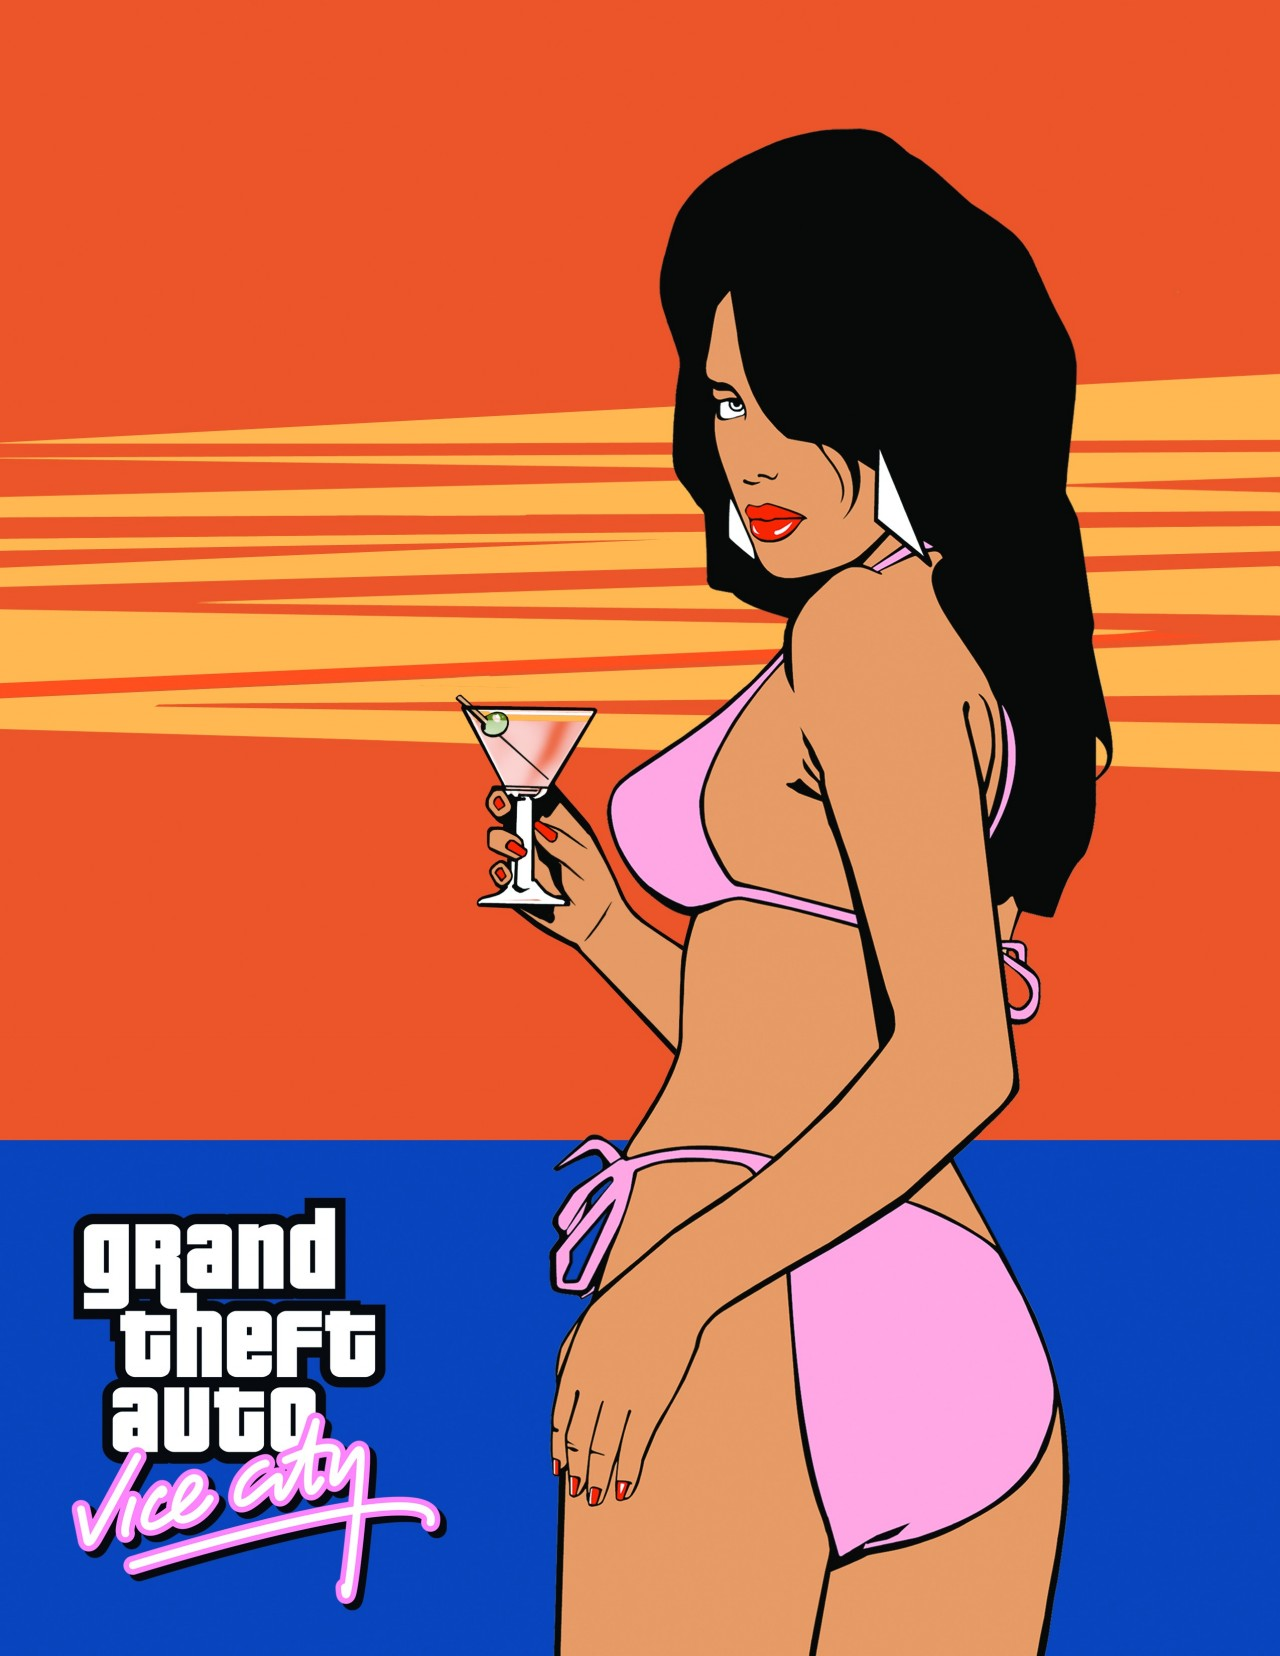 Gta vice city game sexy girl fucking nackt pictures